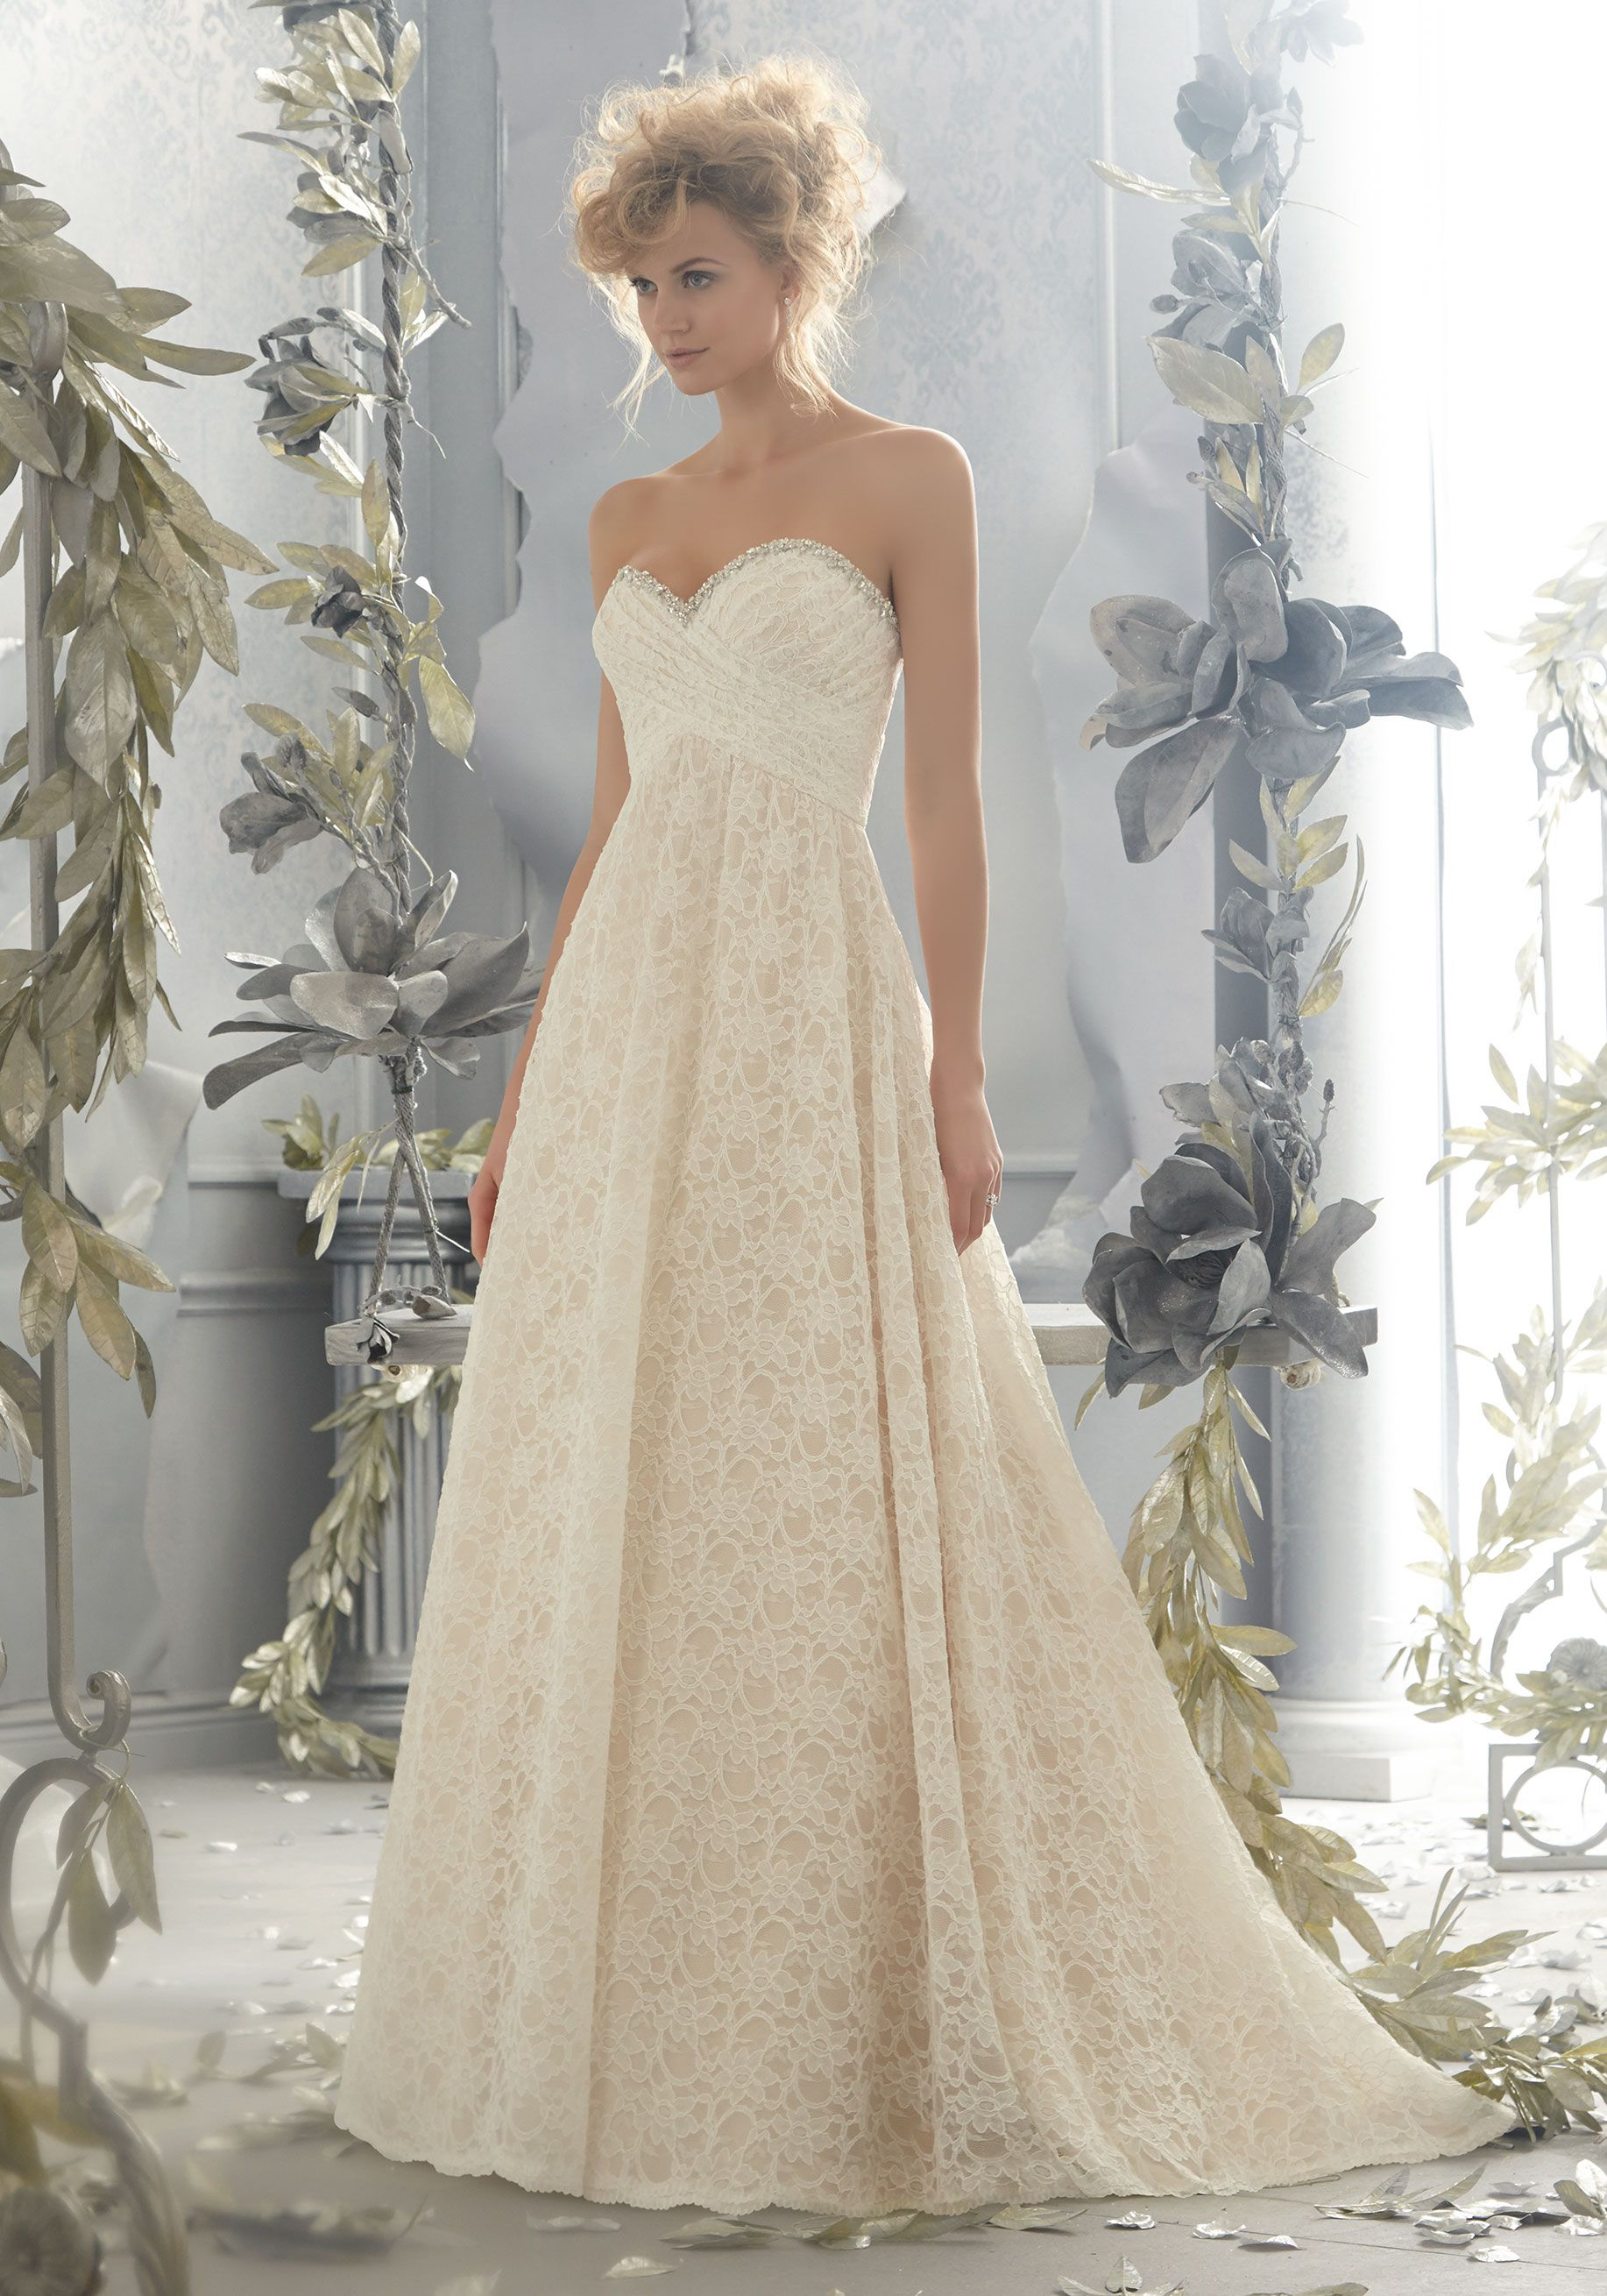 Diamante Beading on a Poetic Lace Wedding Dress Designed by Madeline ...